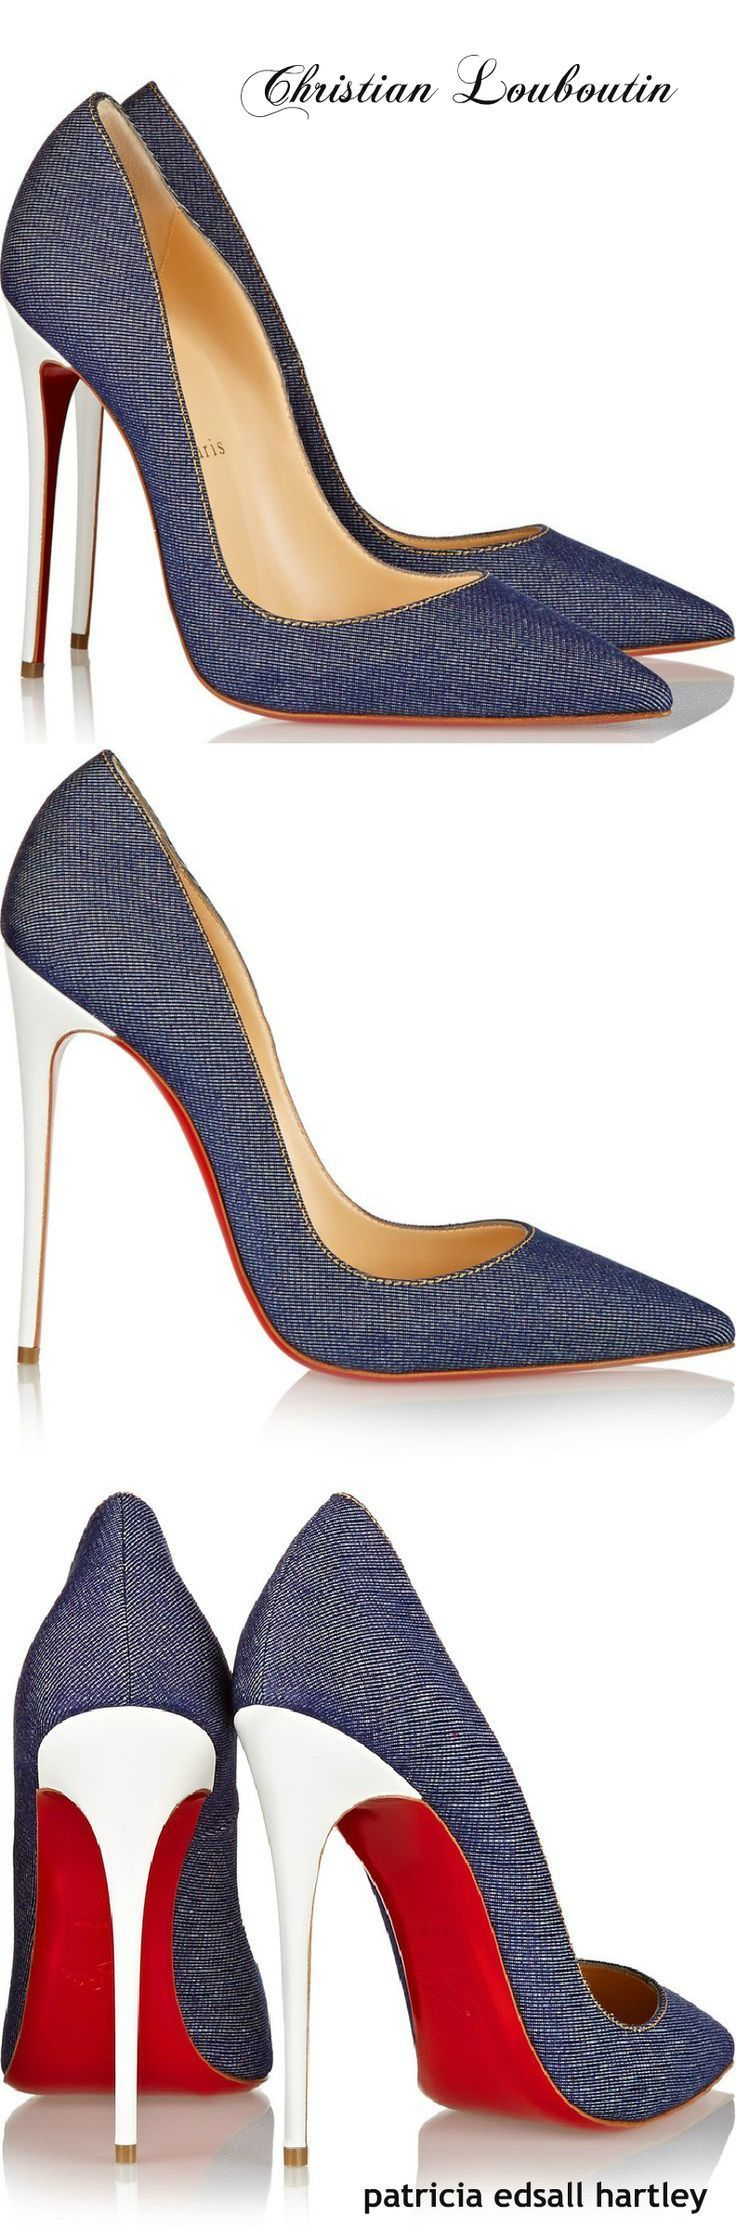 Sale At Breakdown Price Is Going On At Cheap Louboutins Ouelet Store. Find  this Pin and more on Red, White \u0026 Blue Shoes ...